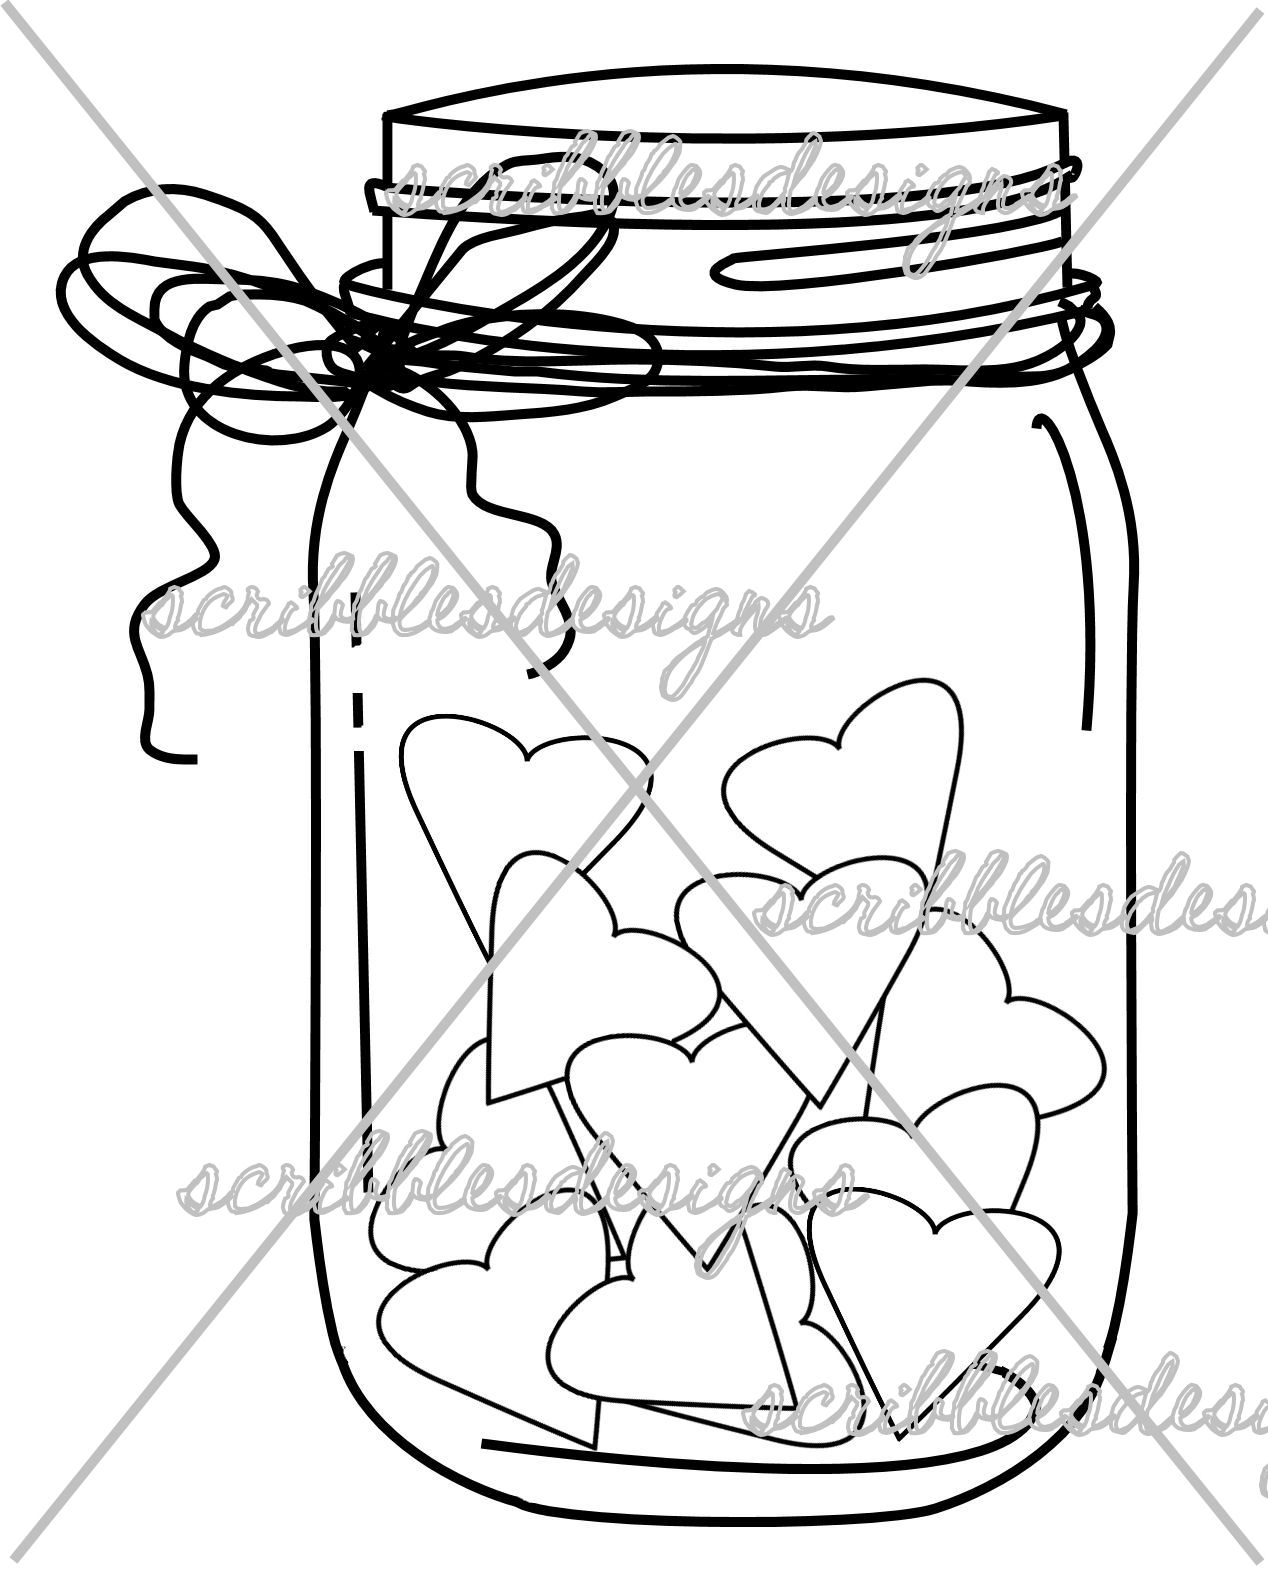 http://buyscribblesdesigns.blogspot.co.uk/2015/03/890-hearts-mason-jar-300.html